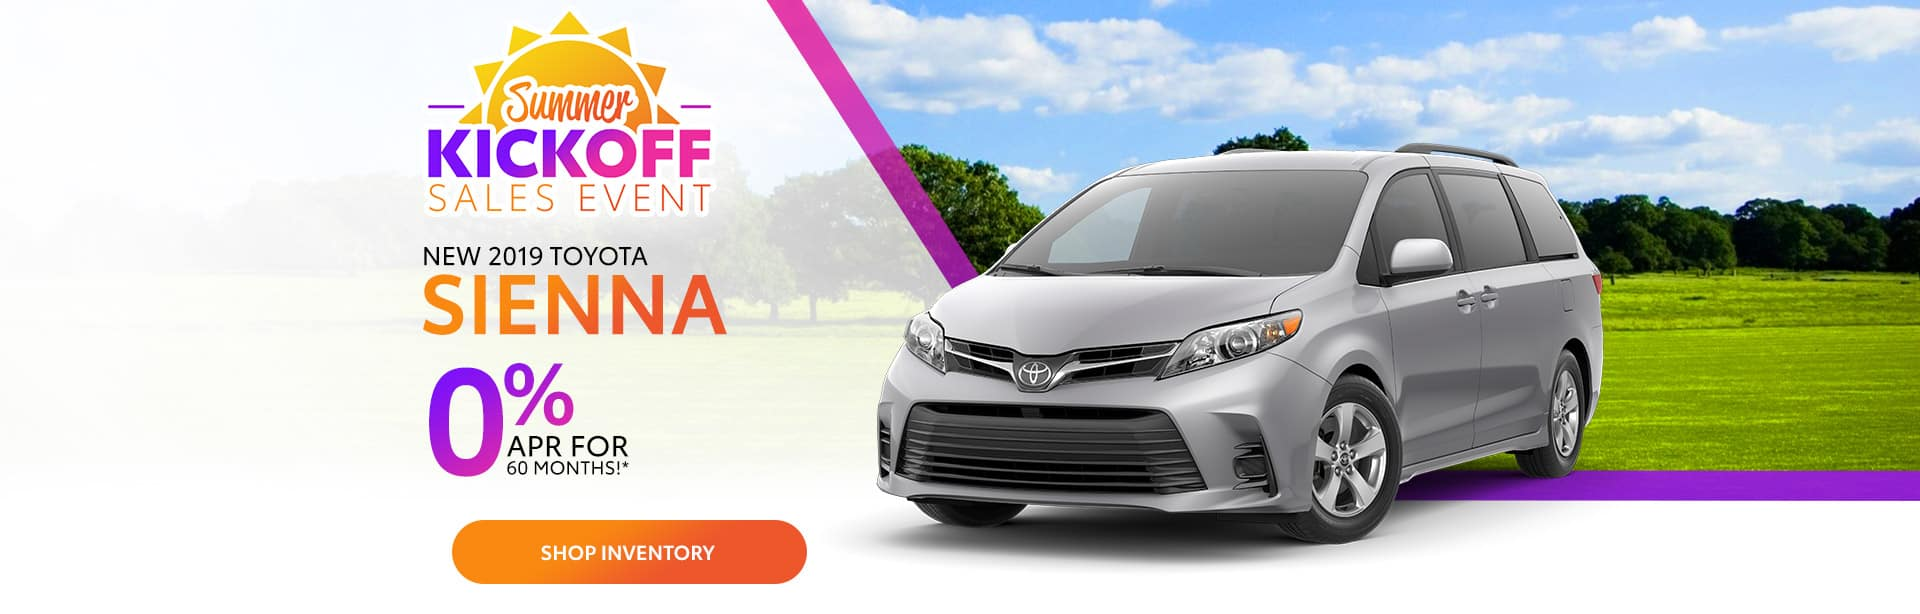 Finance a New Toyota Sienna at 0% APR near Greenwood, Indiana.